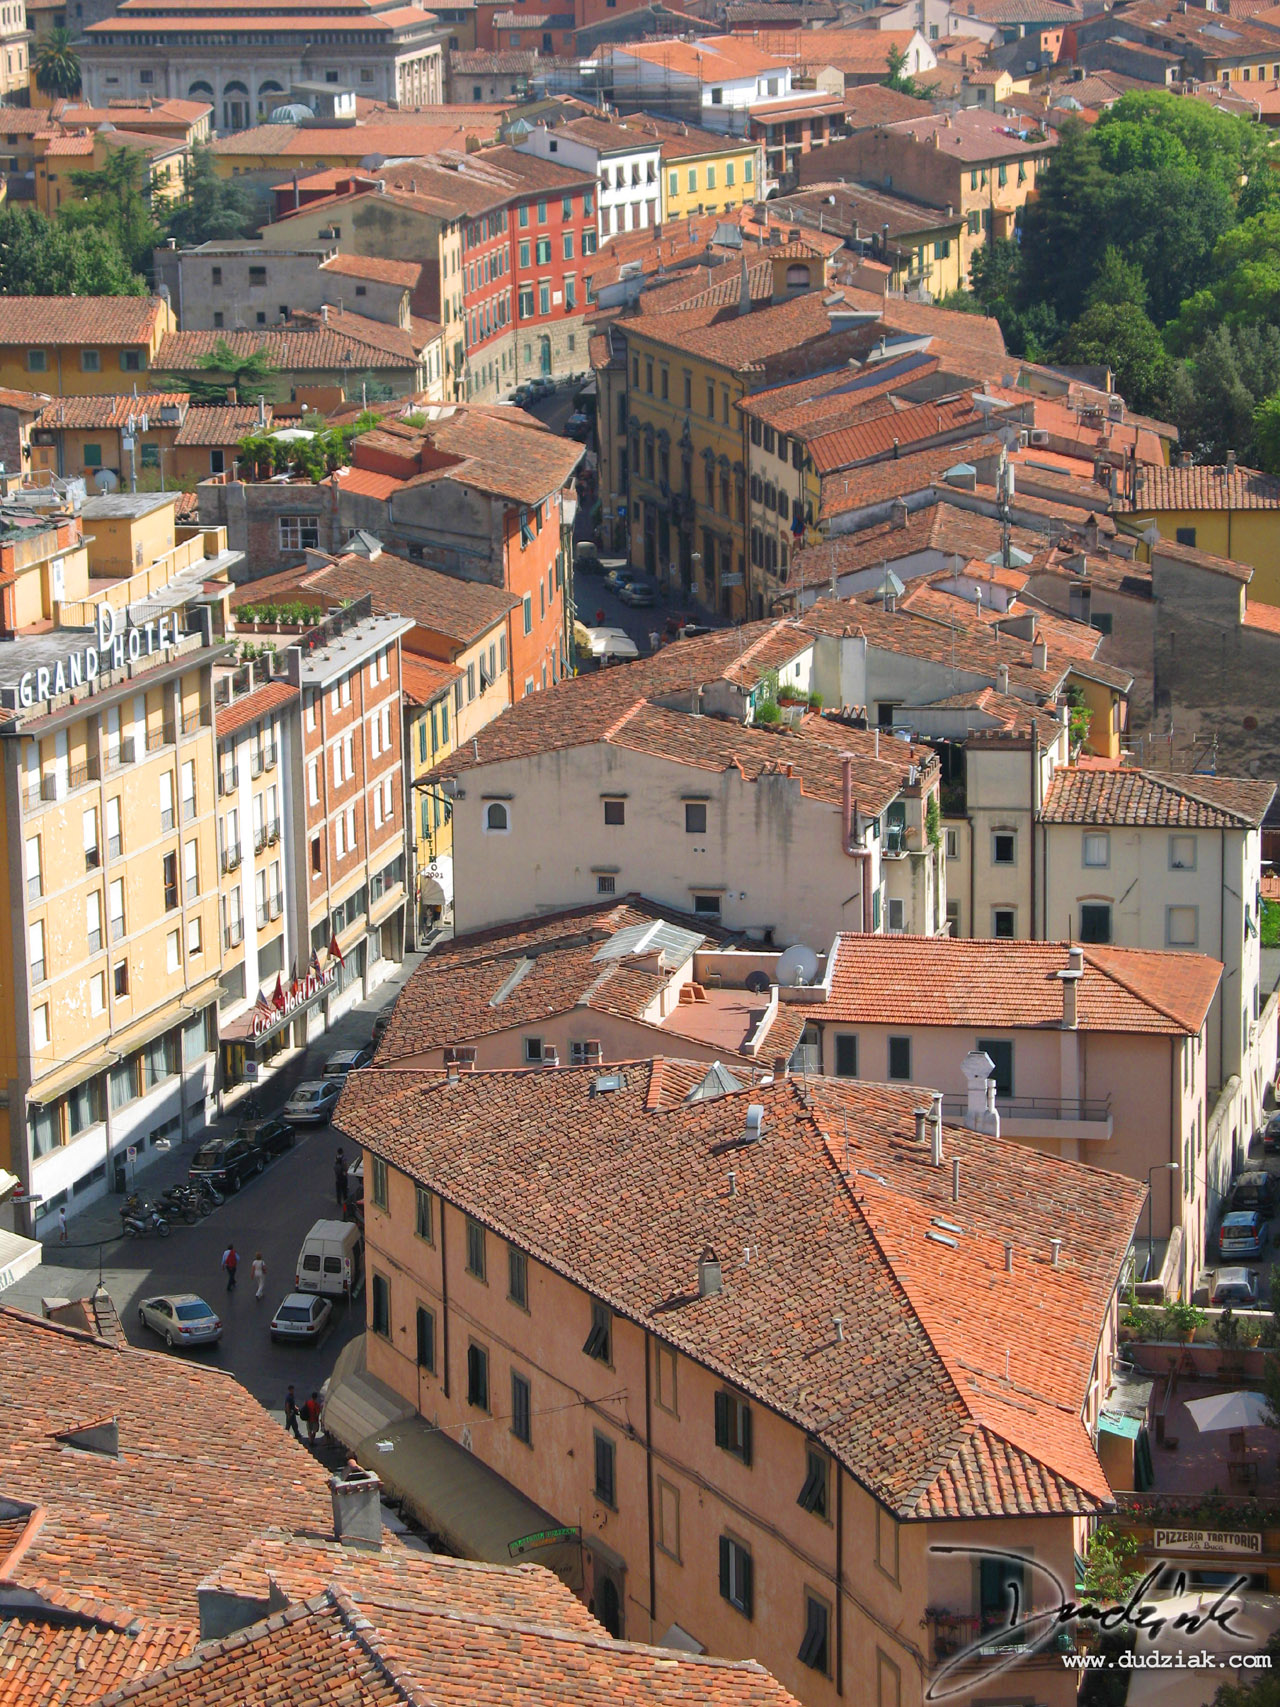 Picture of the streets of Pisa, Italy from the balcony of the Leaning tower of Pisa.